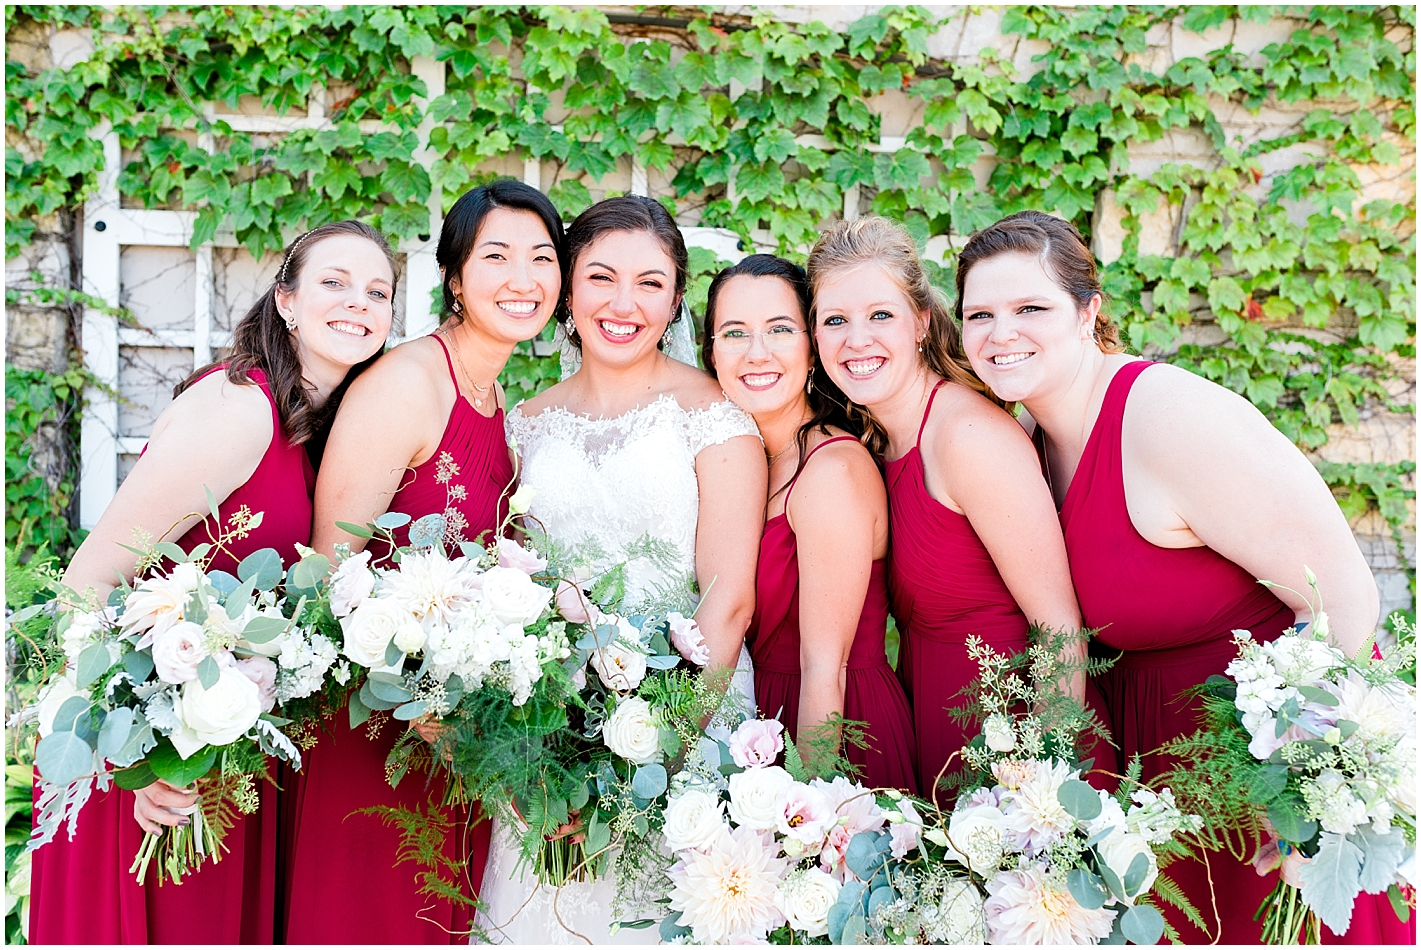 Bridesmaid Portraits By Alyssa Parker Photography